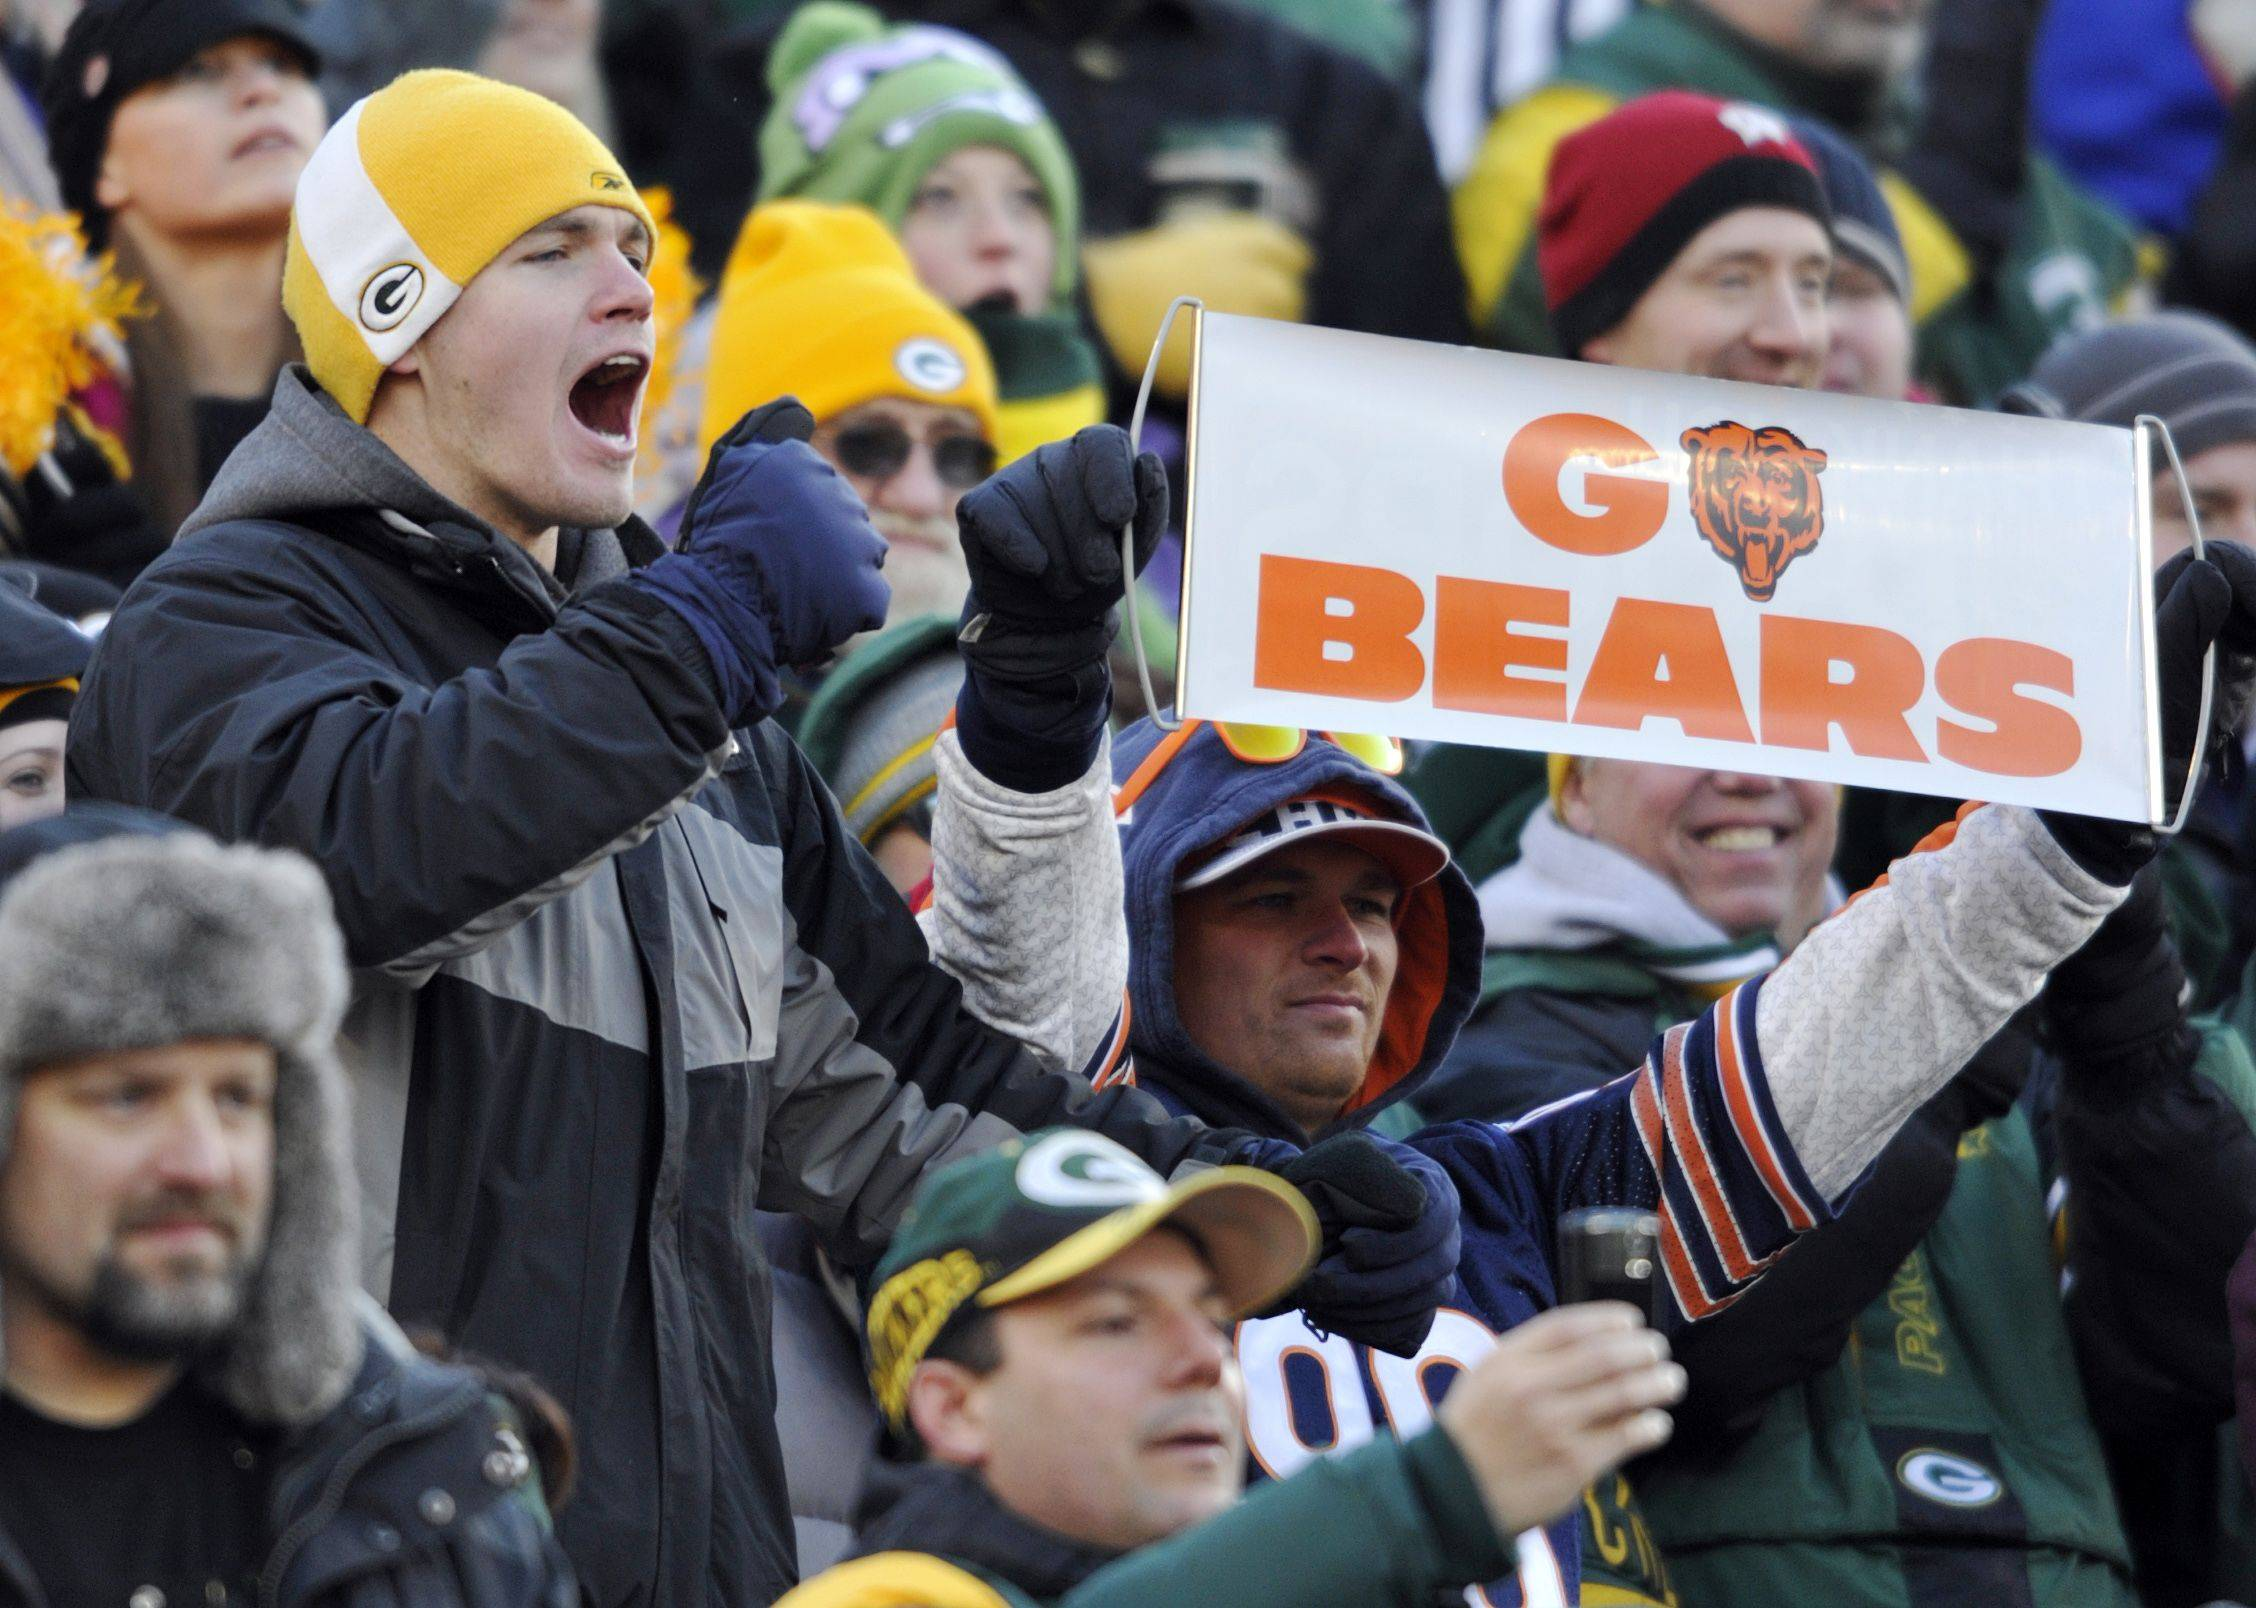 Fans cheer during the first half of an NFL football game between the Green Bay Packers and the Chicago Bears.